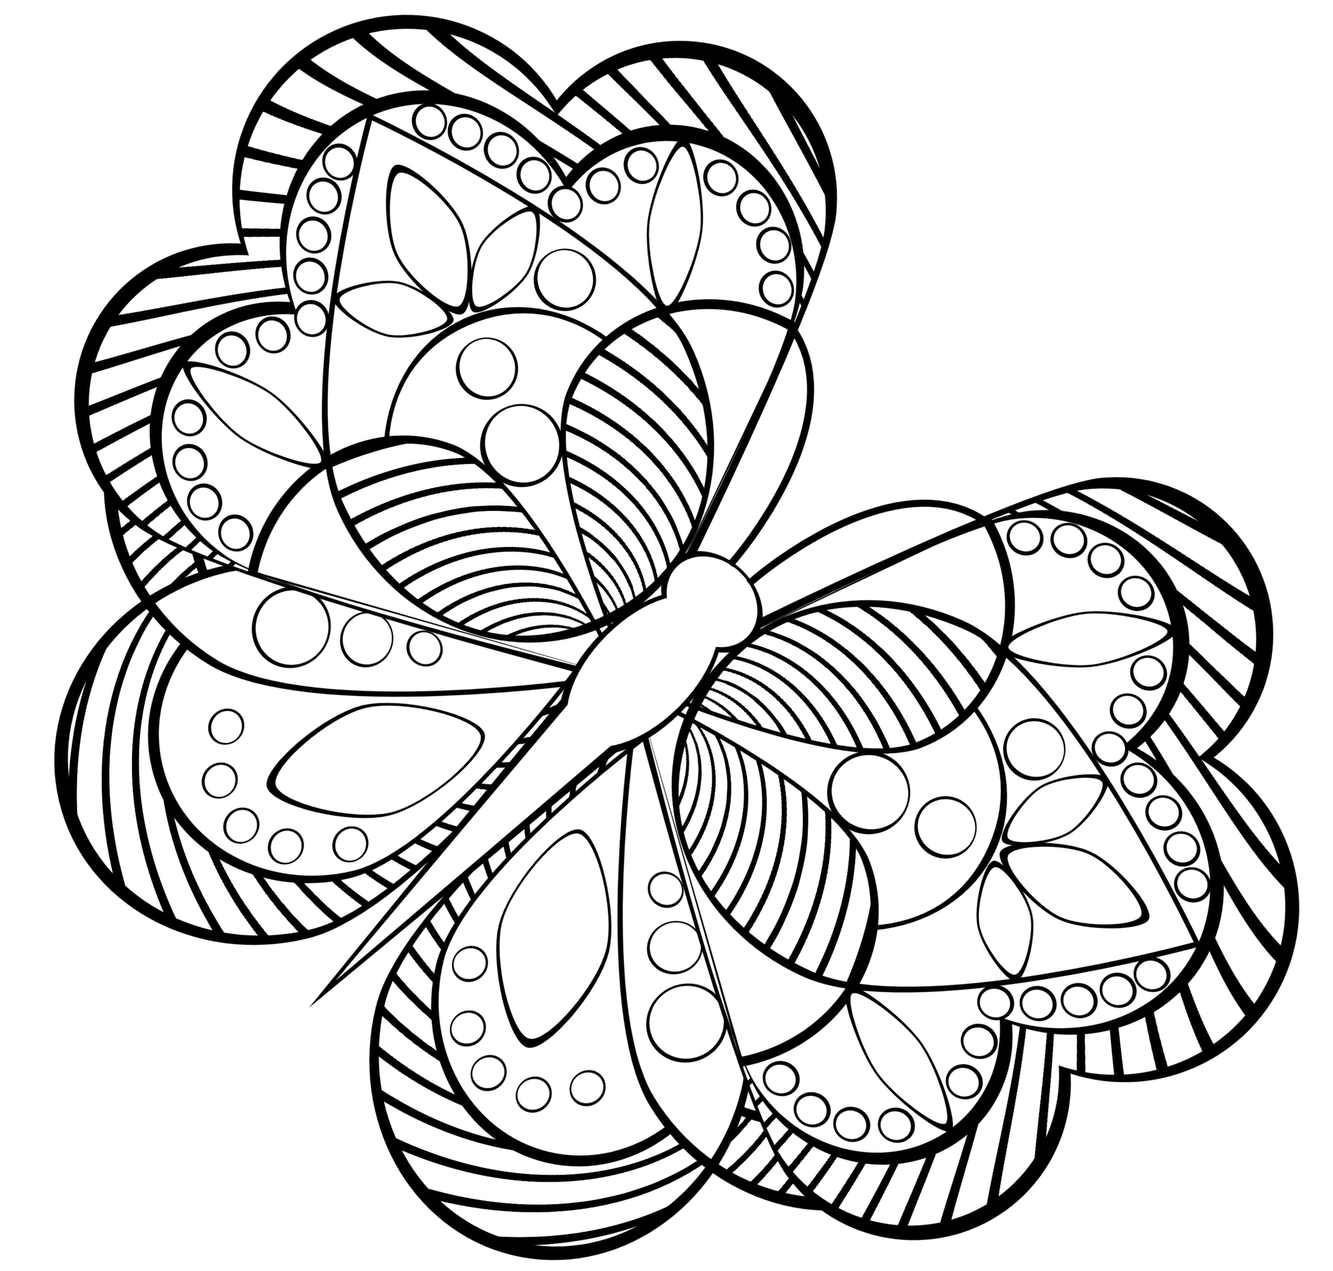 Free Printable Geometric Coloring Pages Coloringpages321